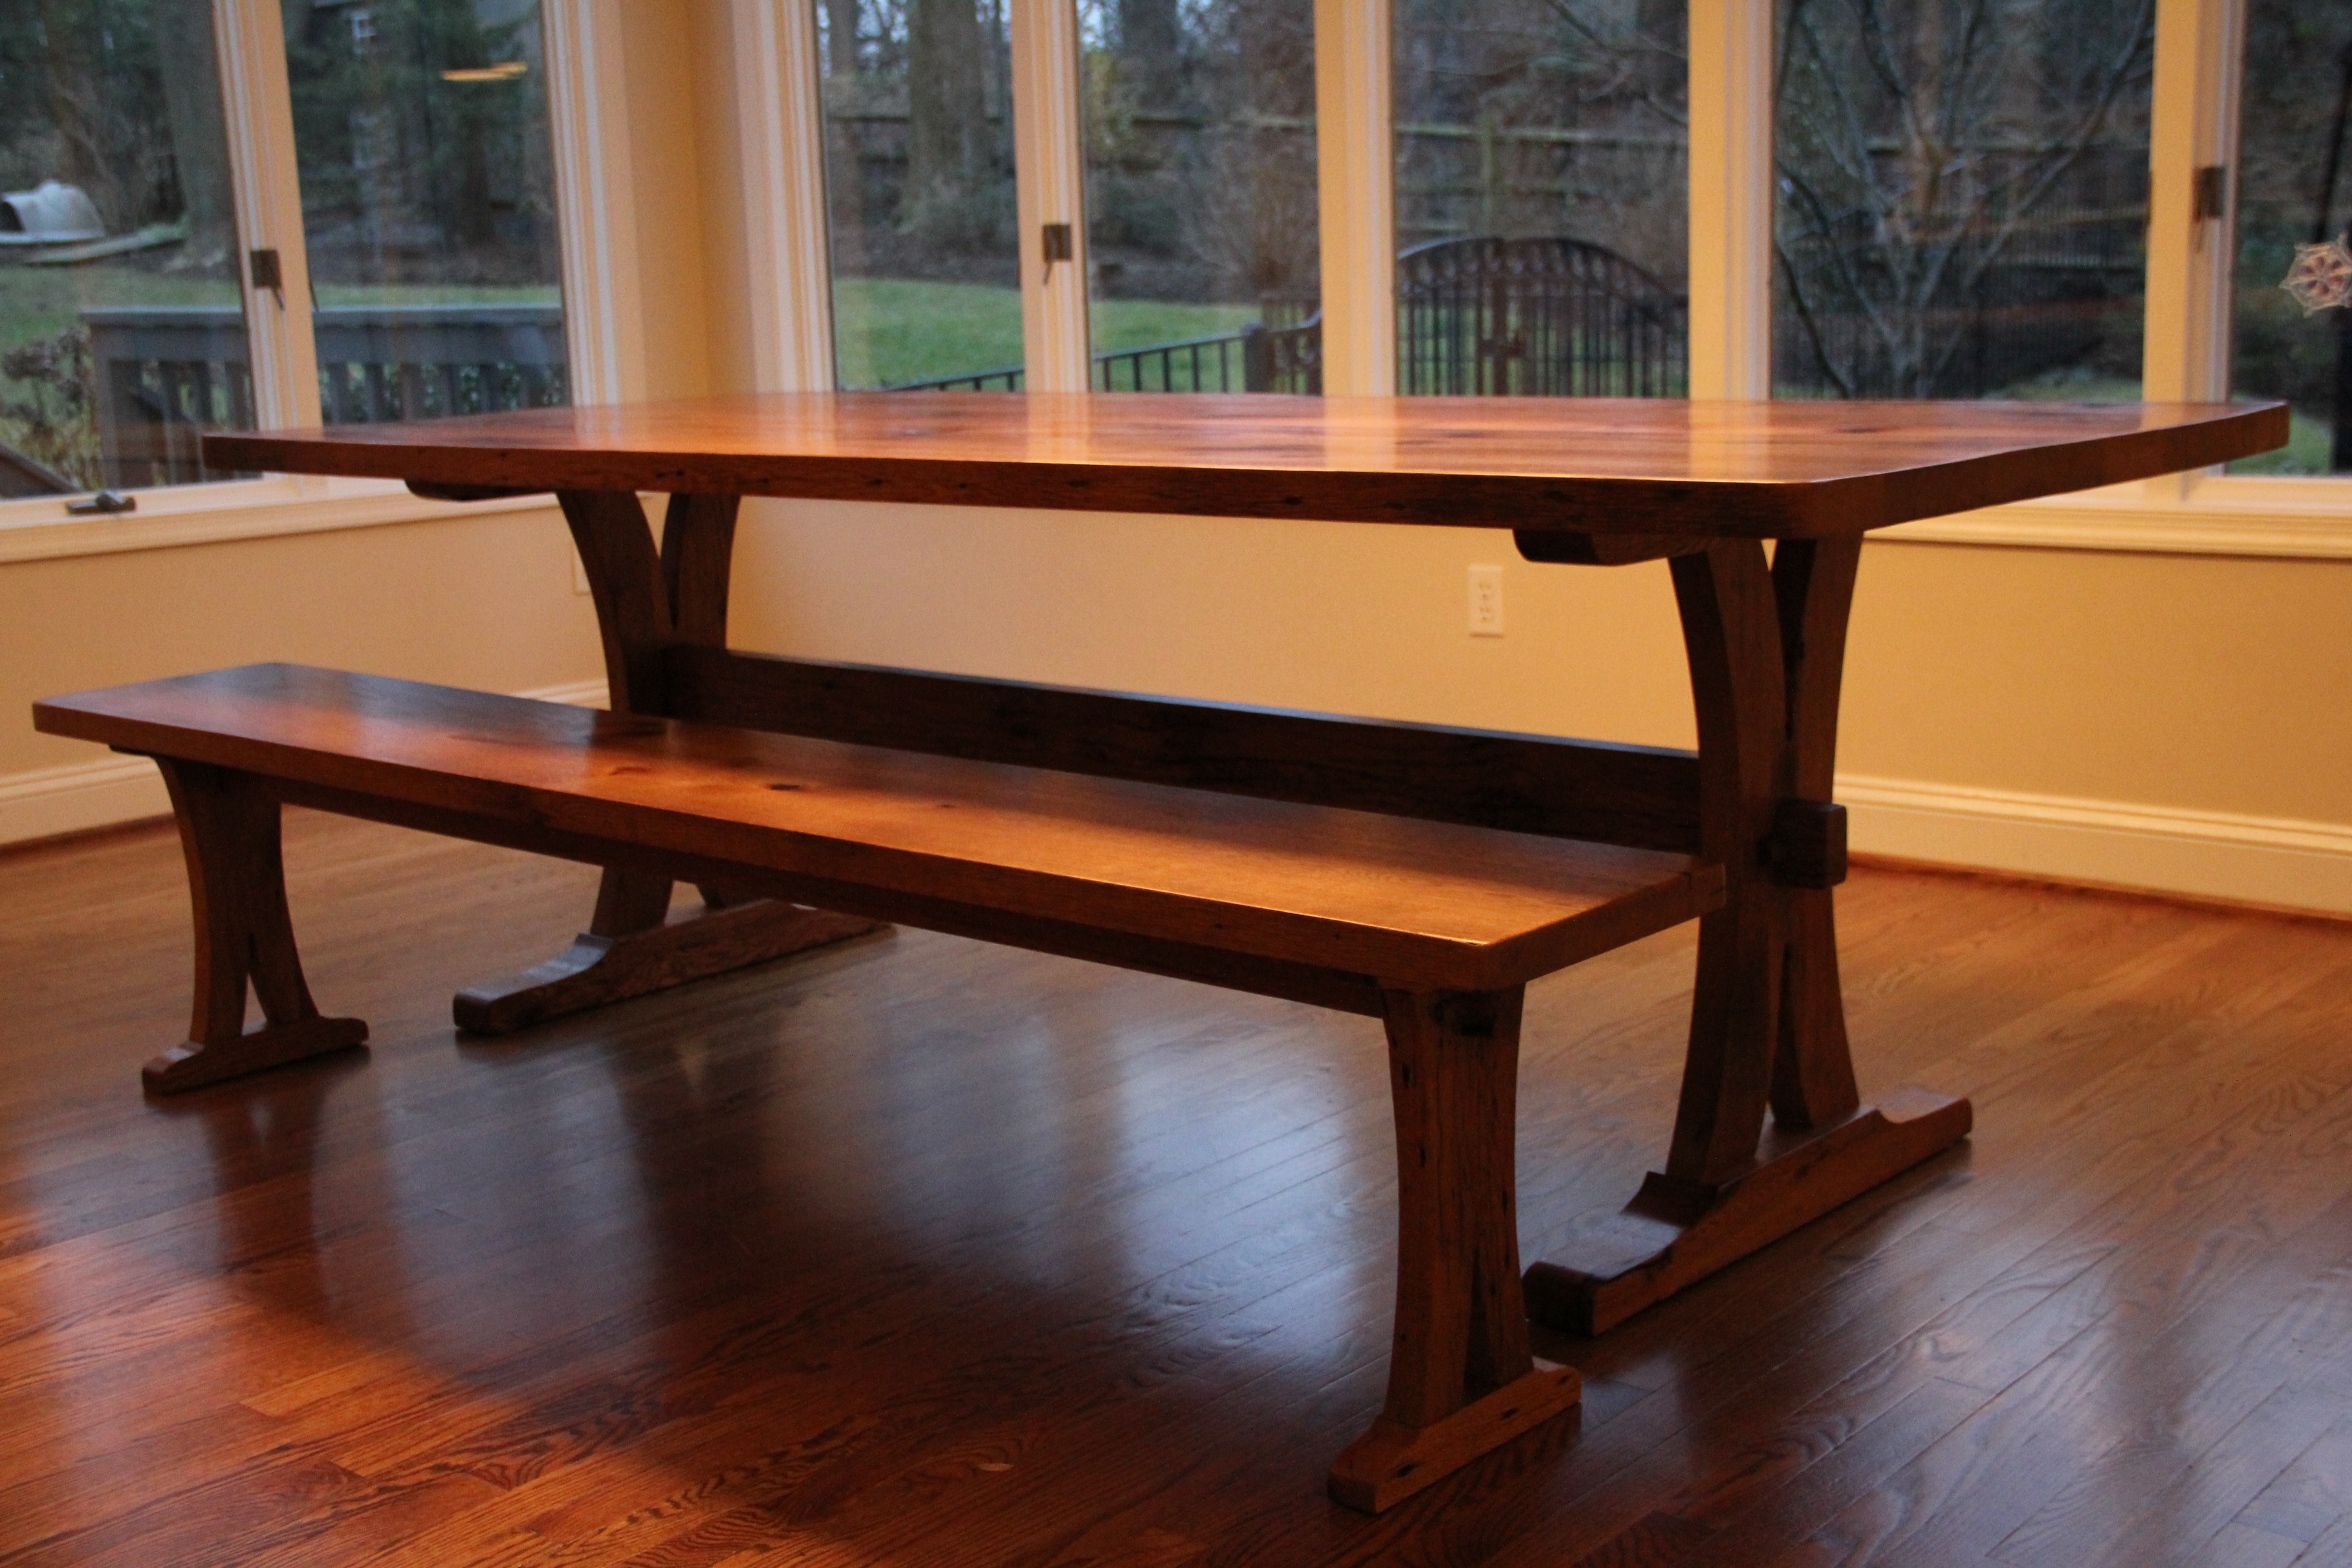 Charmant Reclaimed Oak Trestle Table And Bench